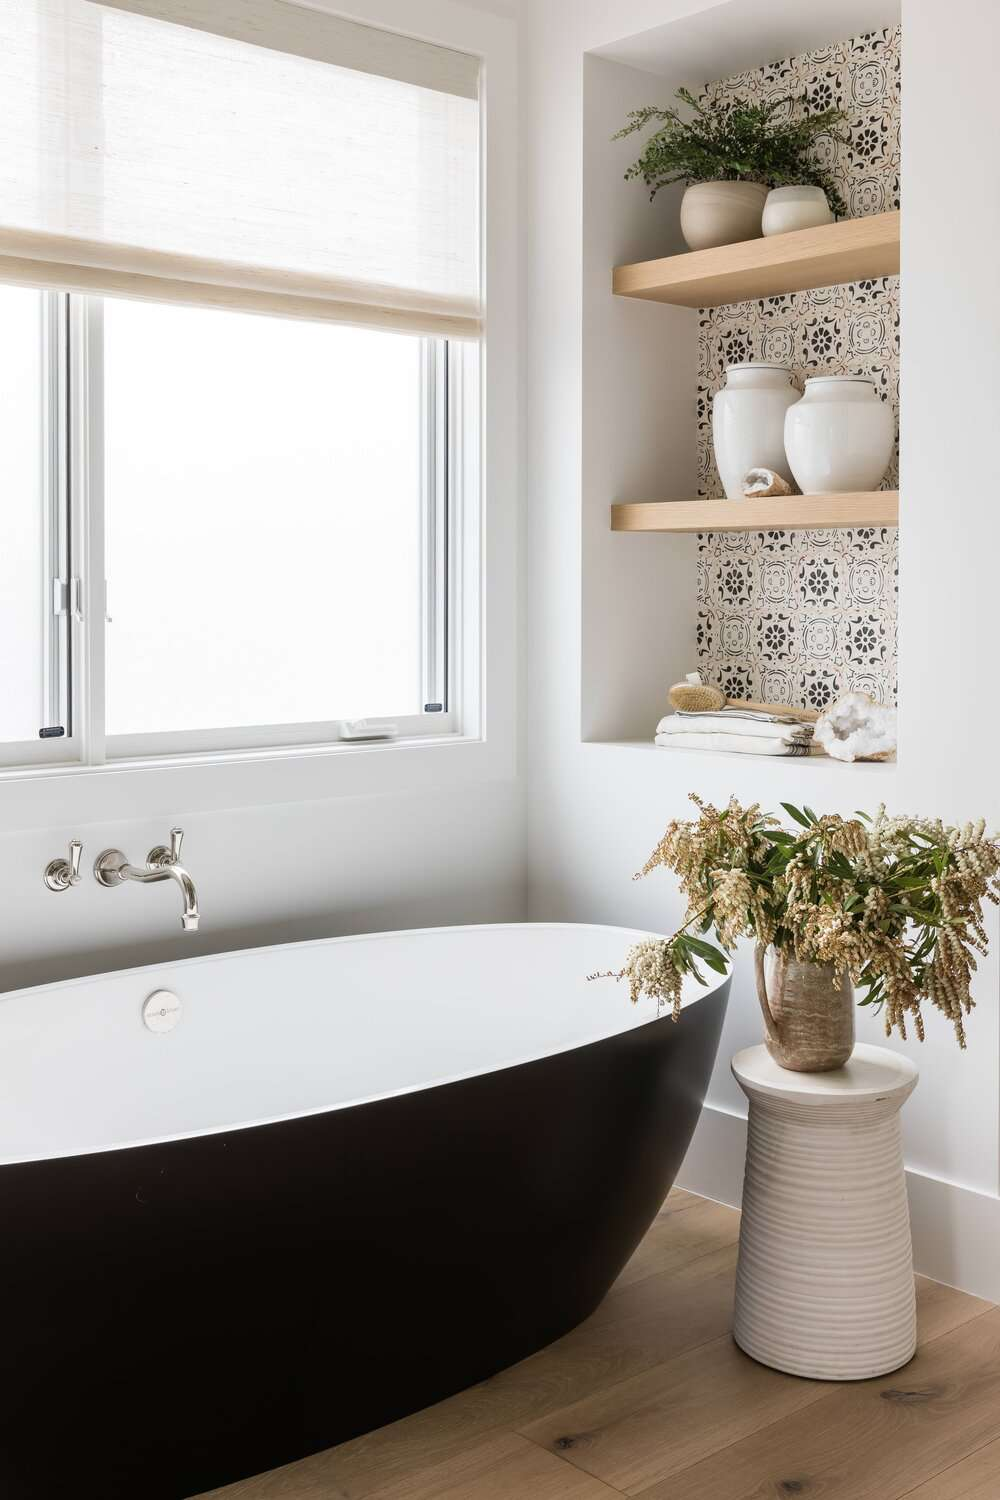 A small bathroom lined with shelves that have been built into the walls